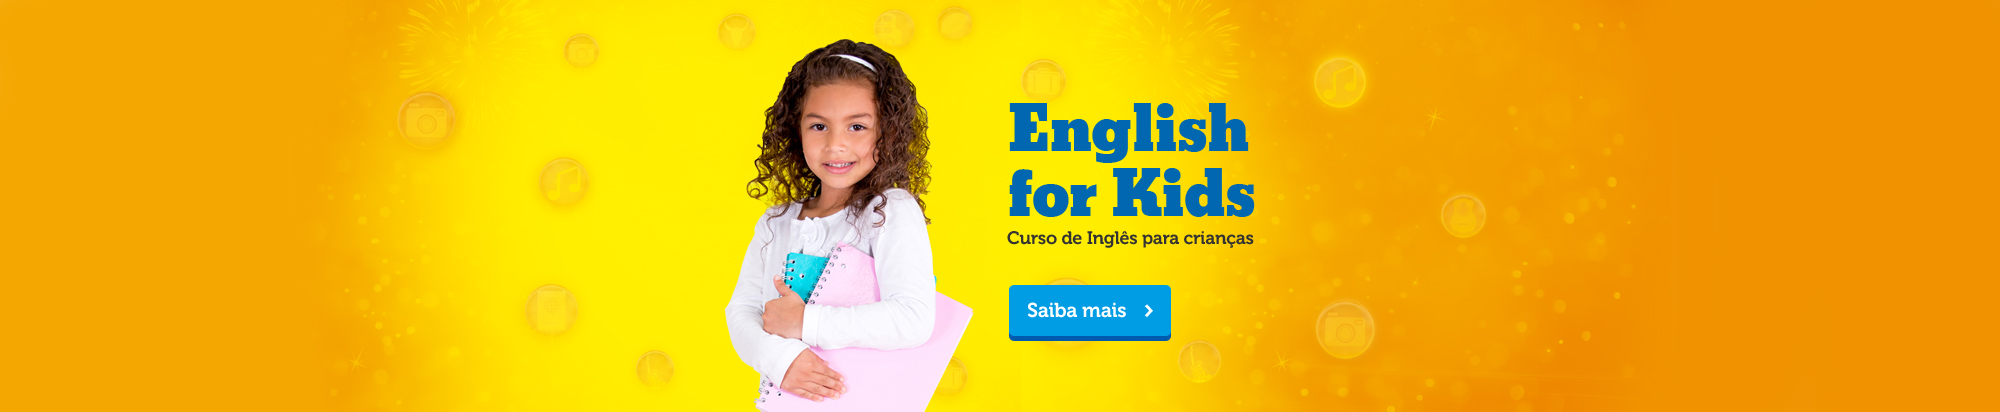 banner_home_ingles_crianca